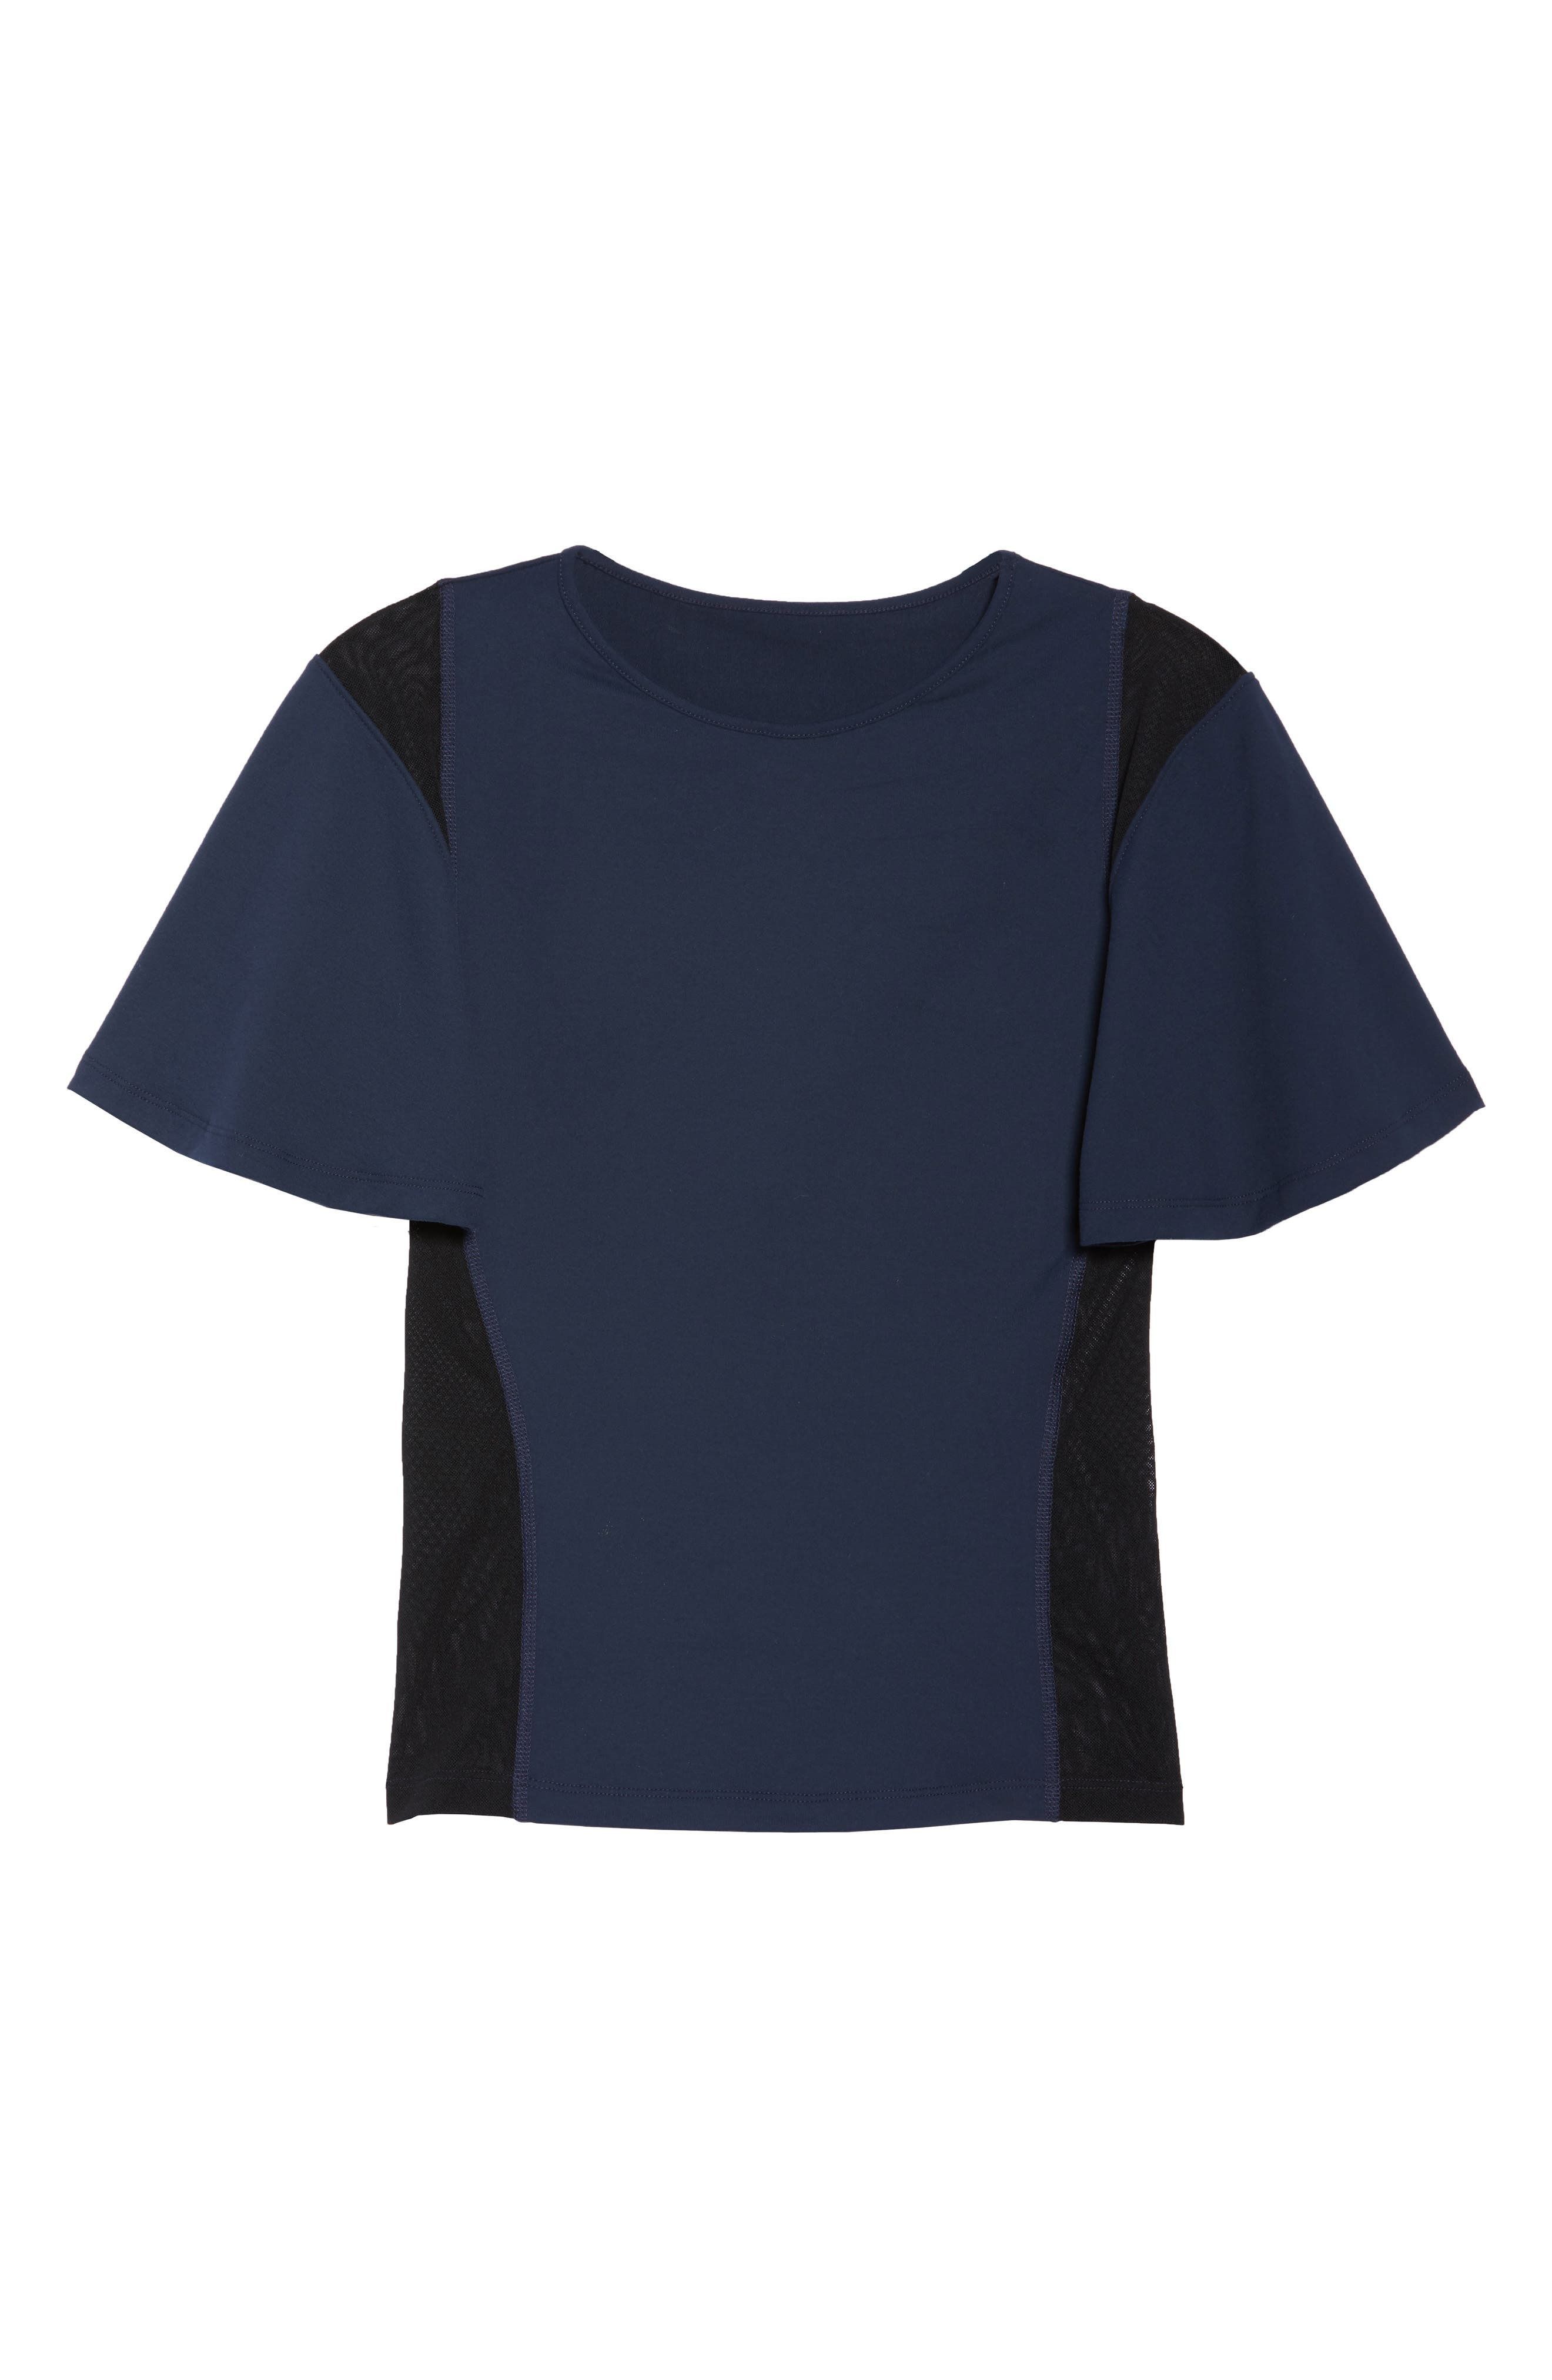 BoomBoom Athletica Wing Sleeve Tee,                             Alternate thumbnail 7, color,                             Navy/ Black